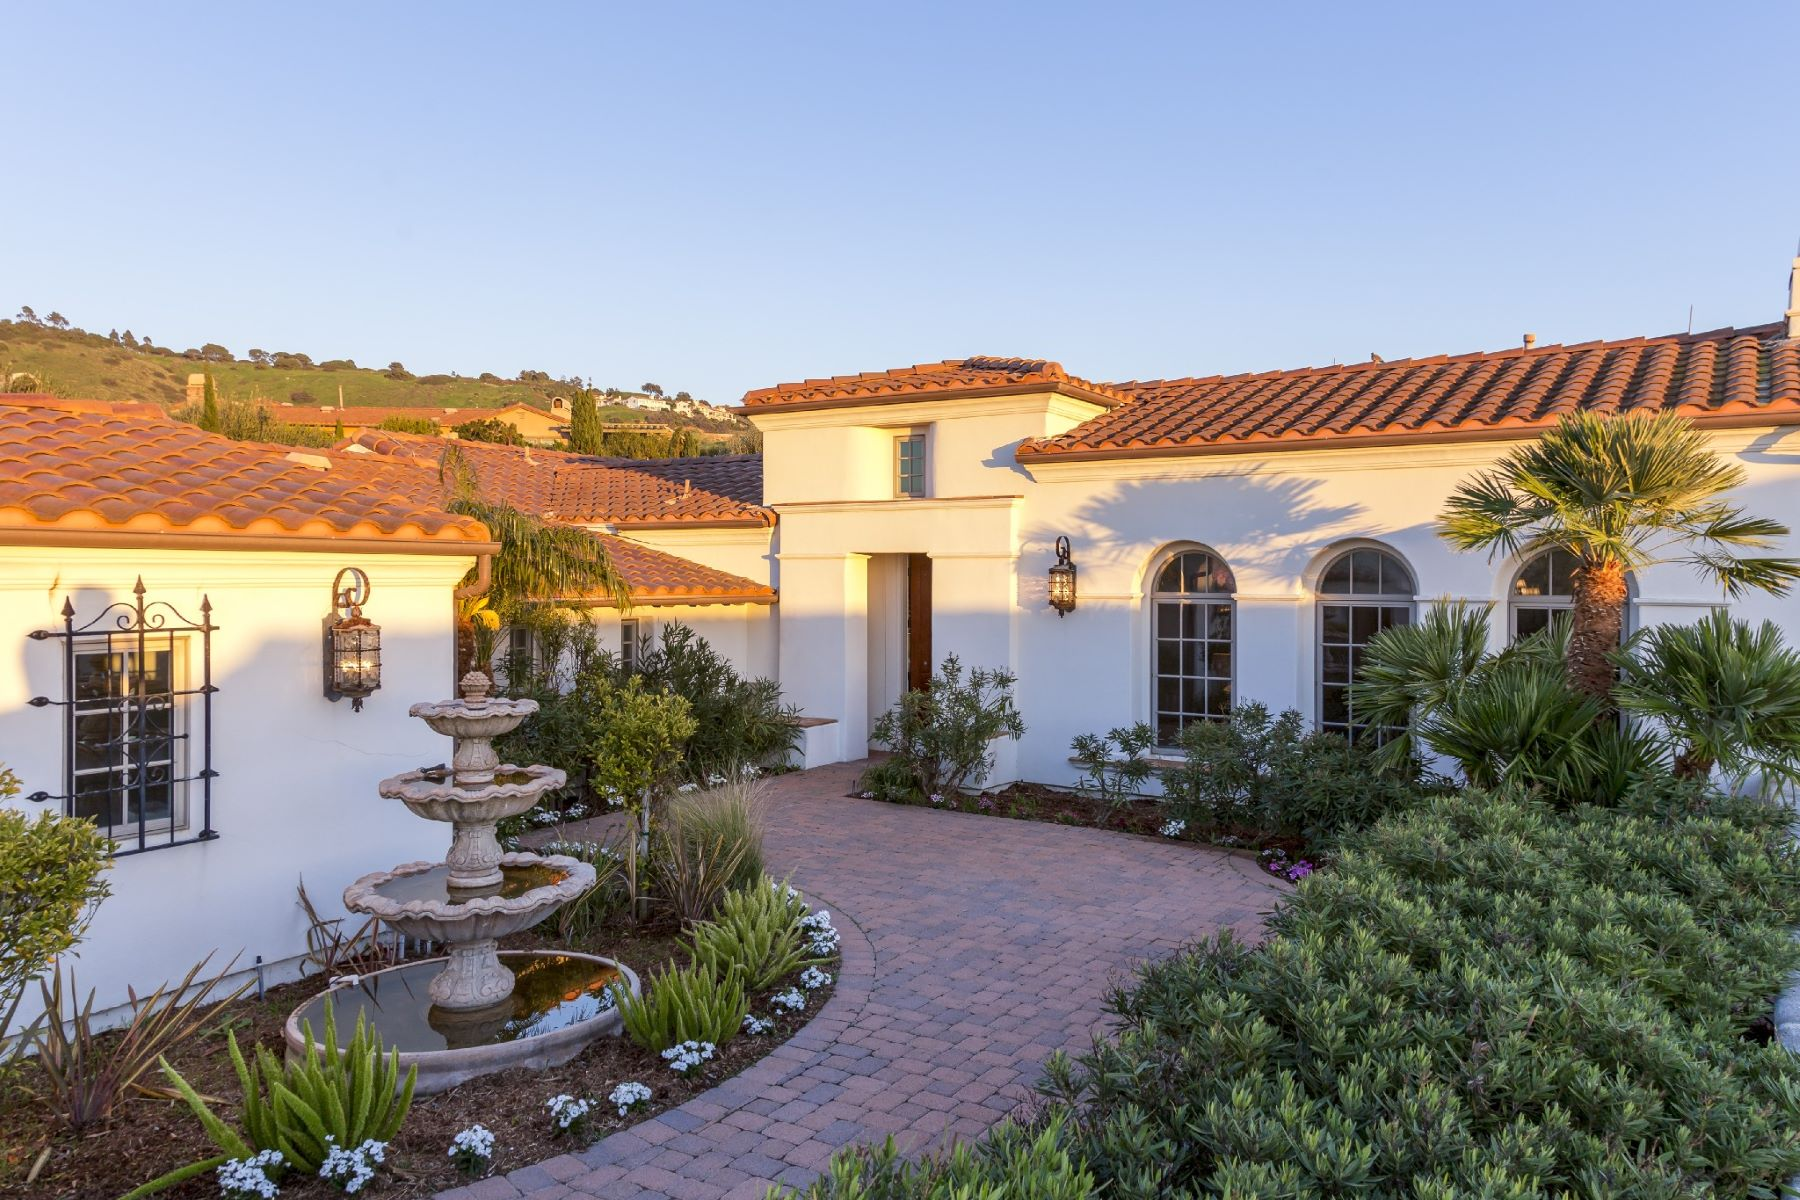 Single Family Home for Sale at 50 Pacifica Del Mar Rancho Palos Verdes, California 90275 United States